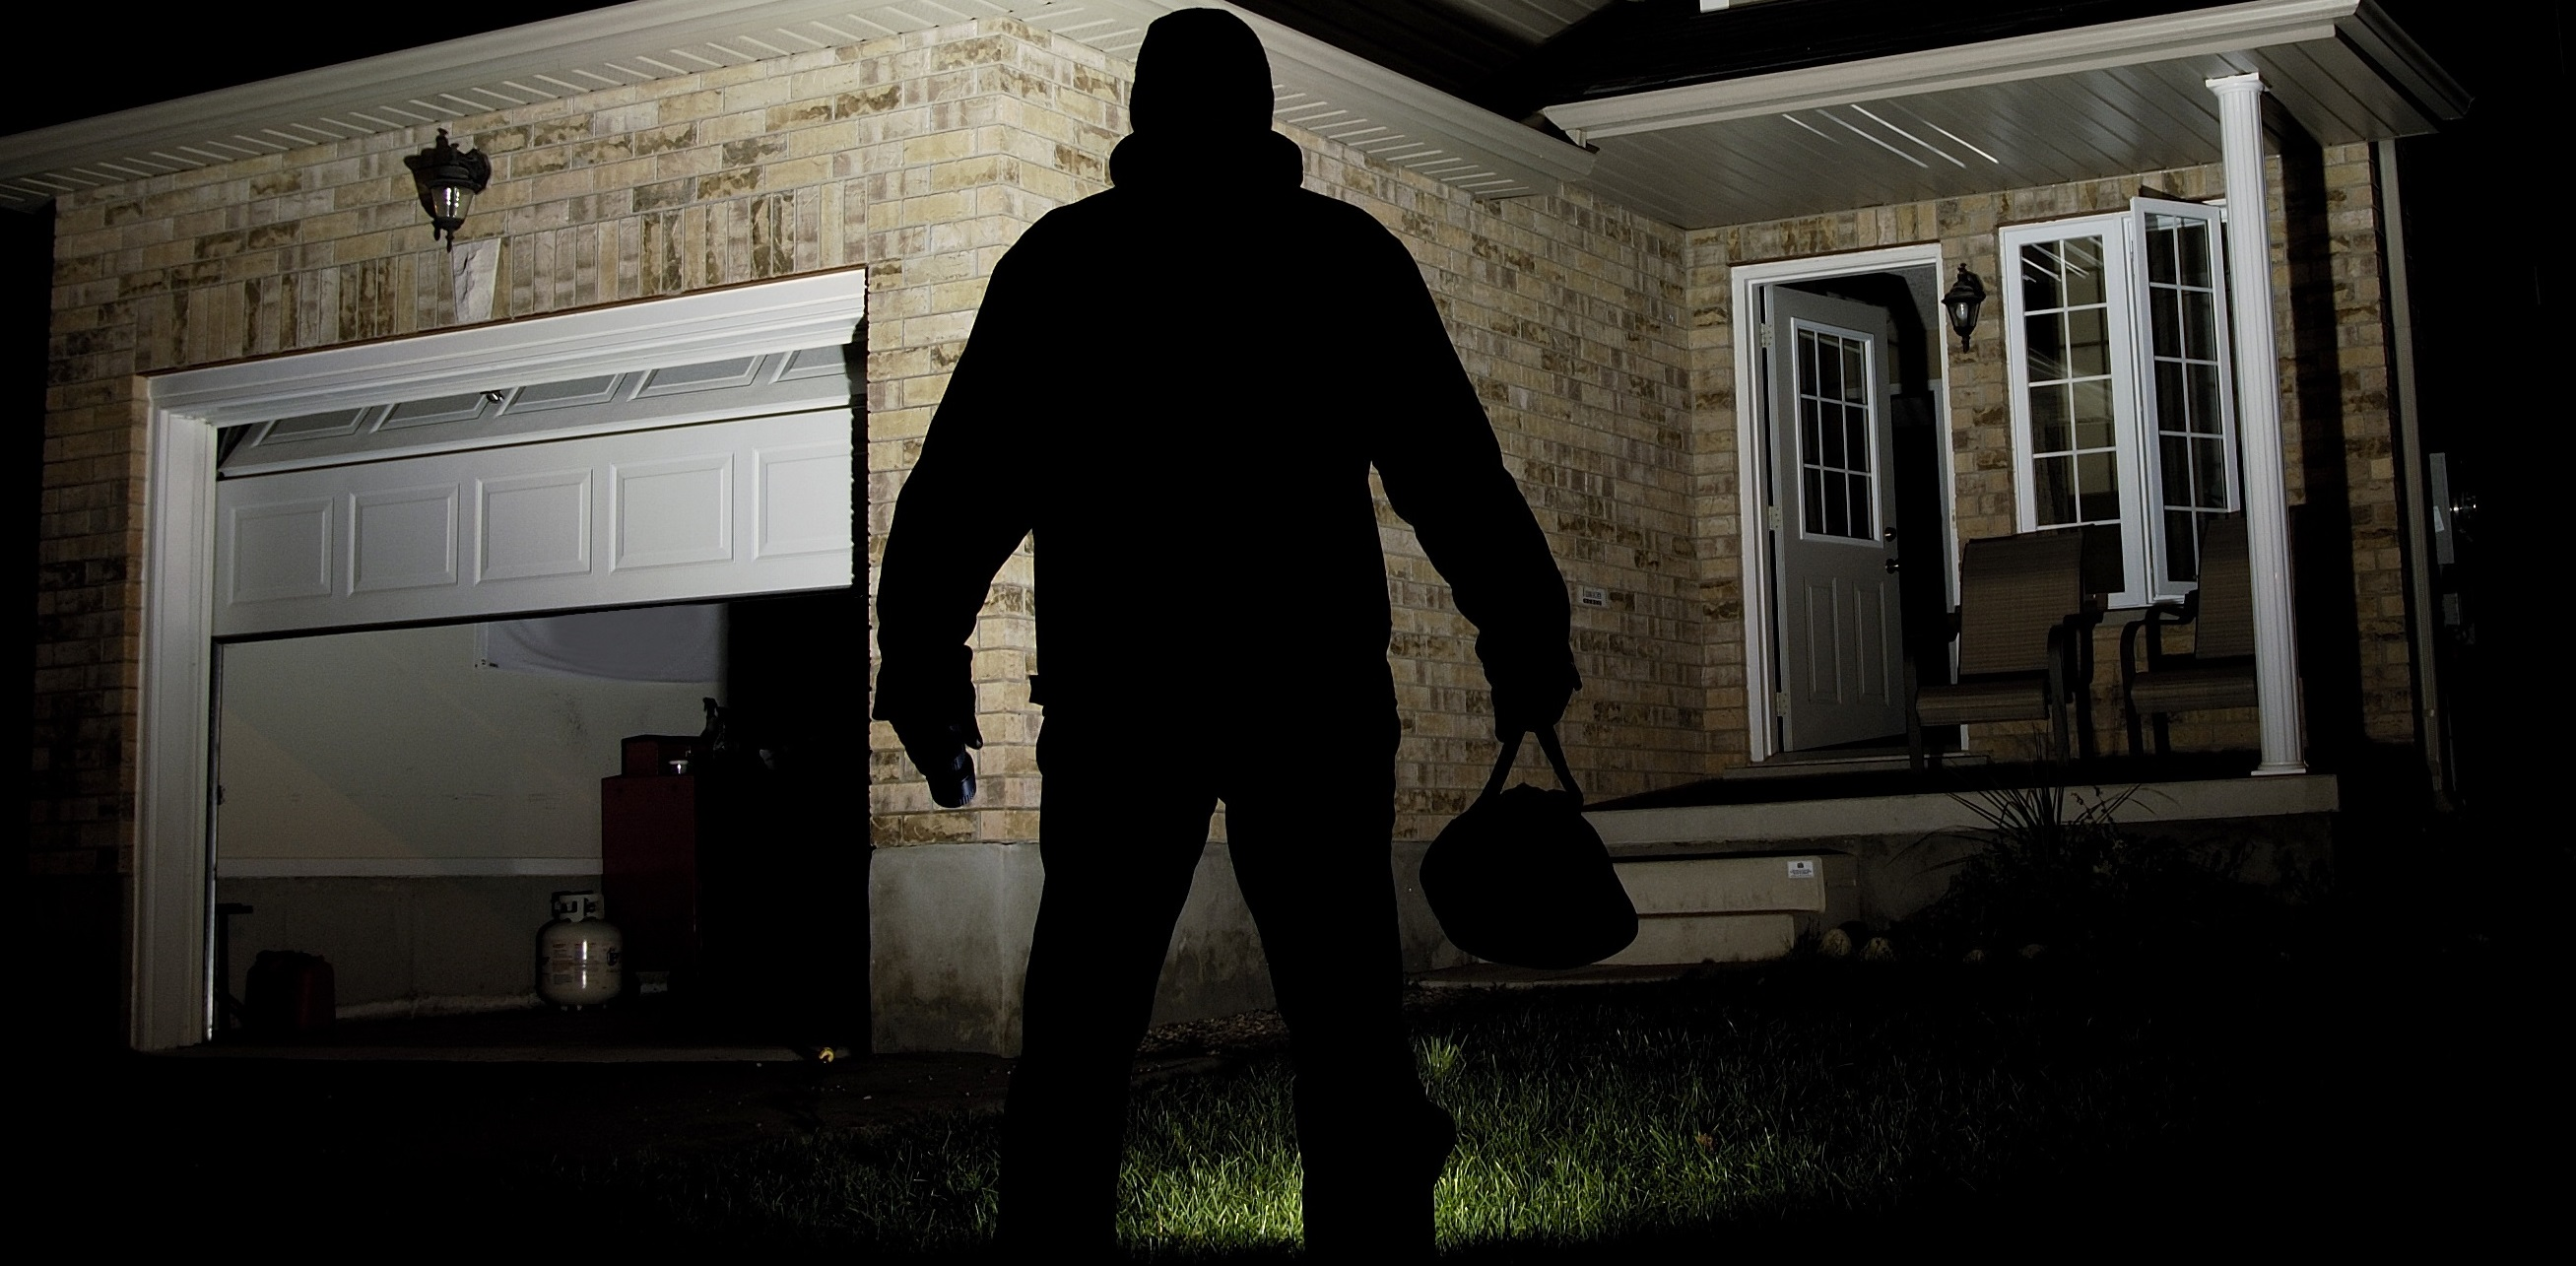 Top 10 reasons to get a security system simpson security for Top 10 security systems for home